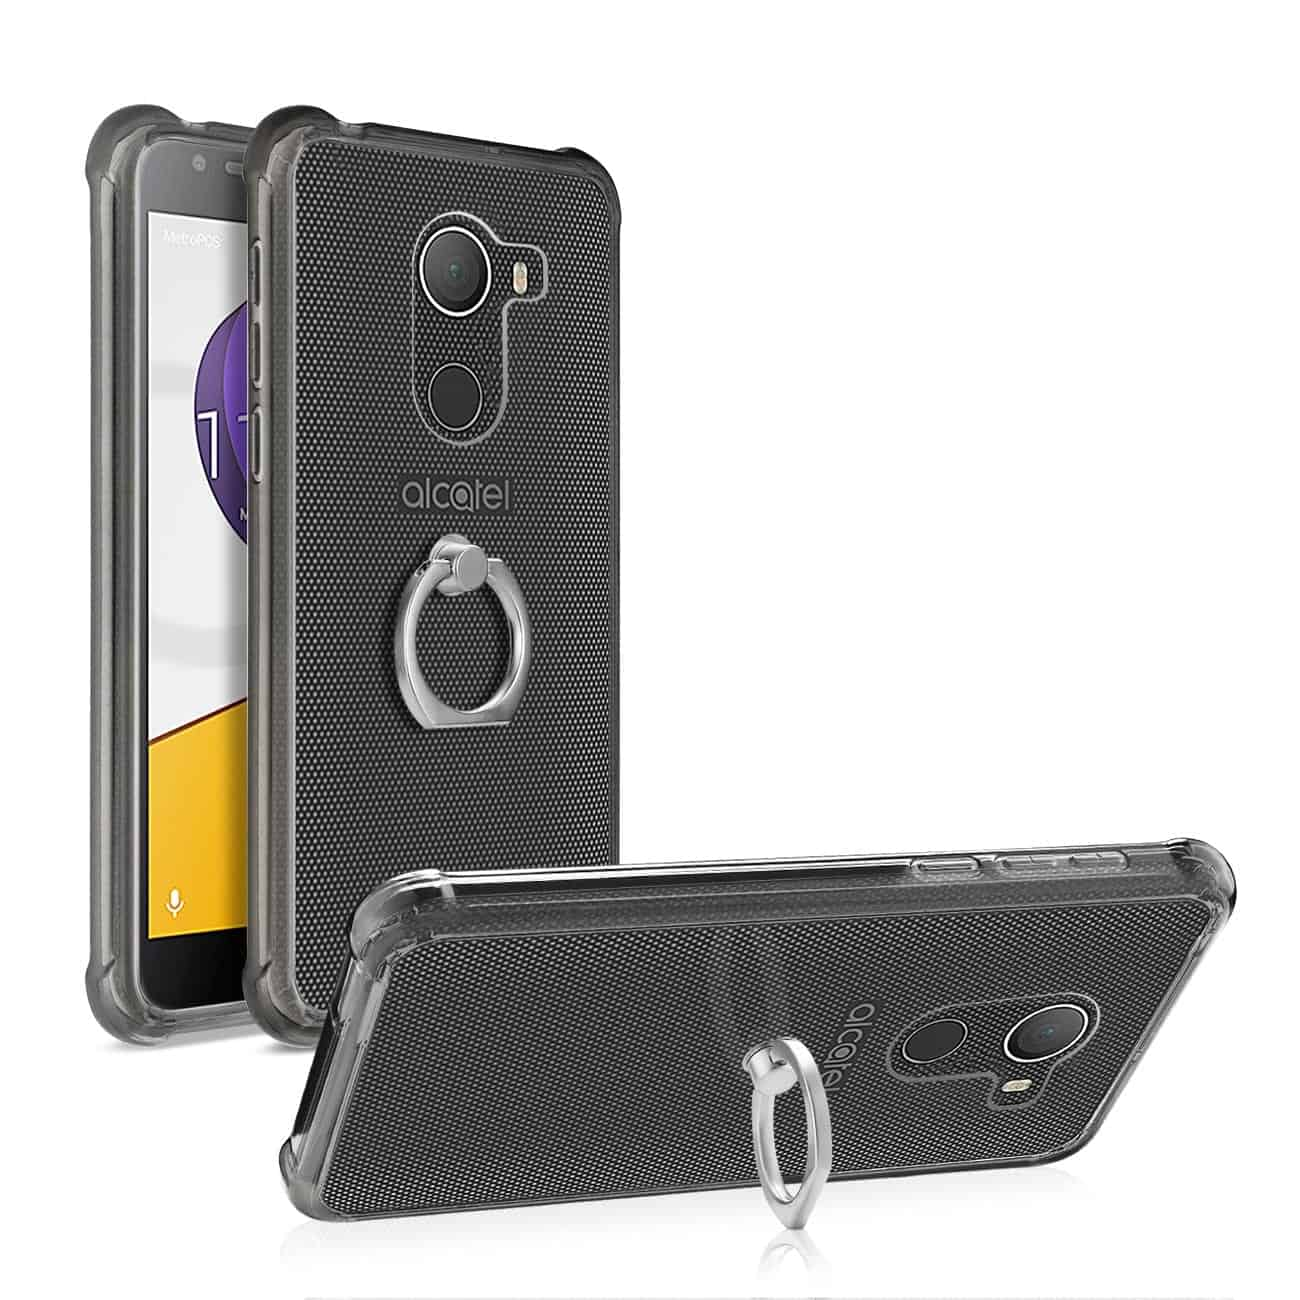 ALCATEL WALTERS TRANSPARENT AIR CUSHION PROTECTOR BUMPER CASE WITH RING HOLDER IN CLEAR BLACK